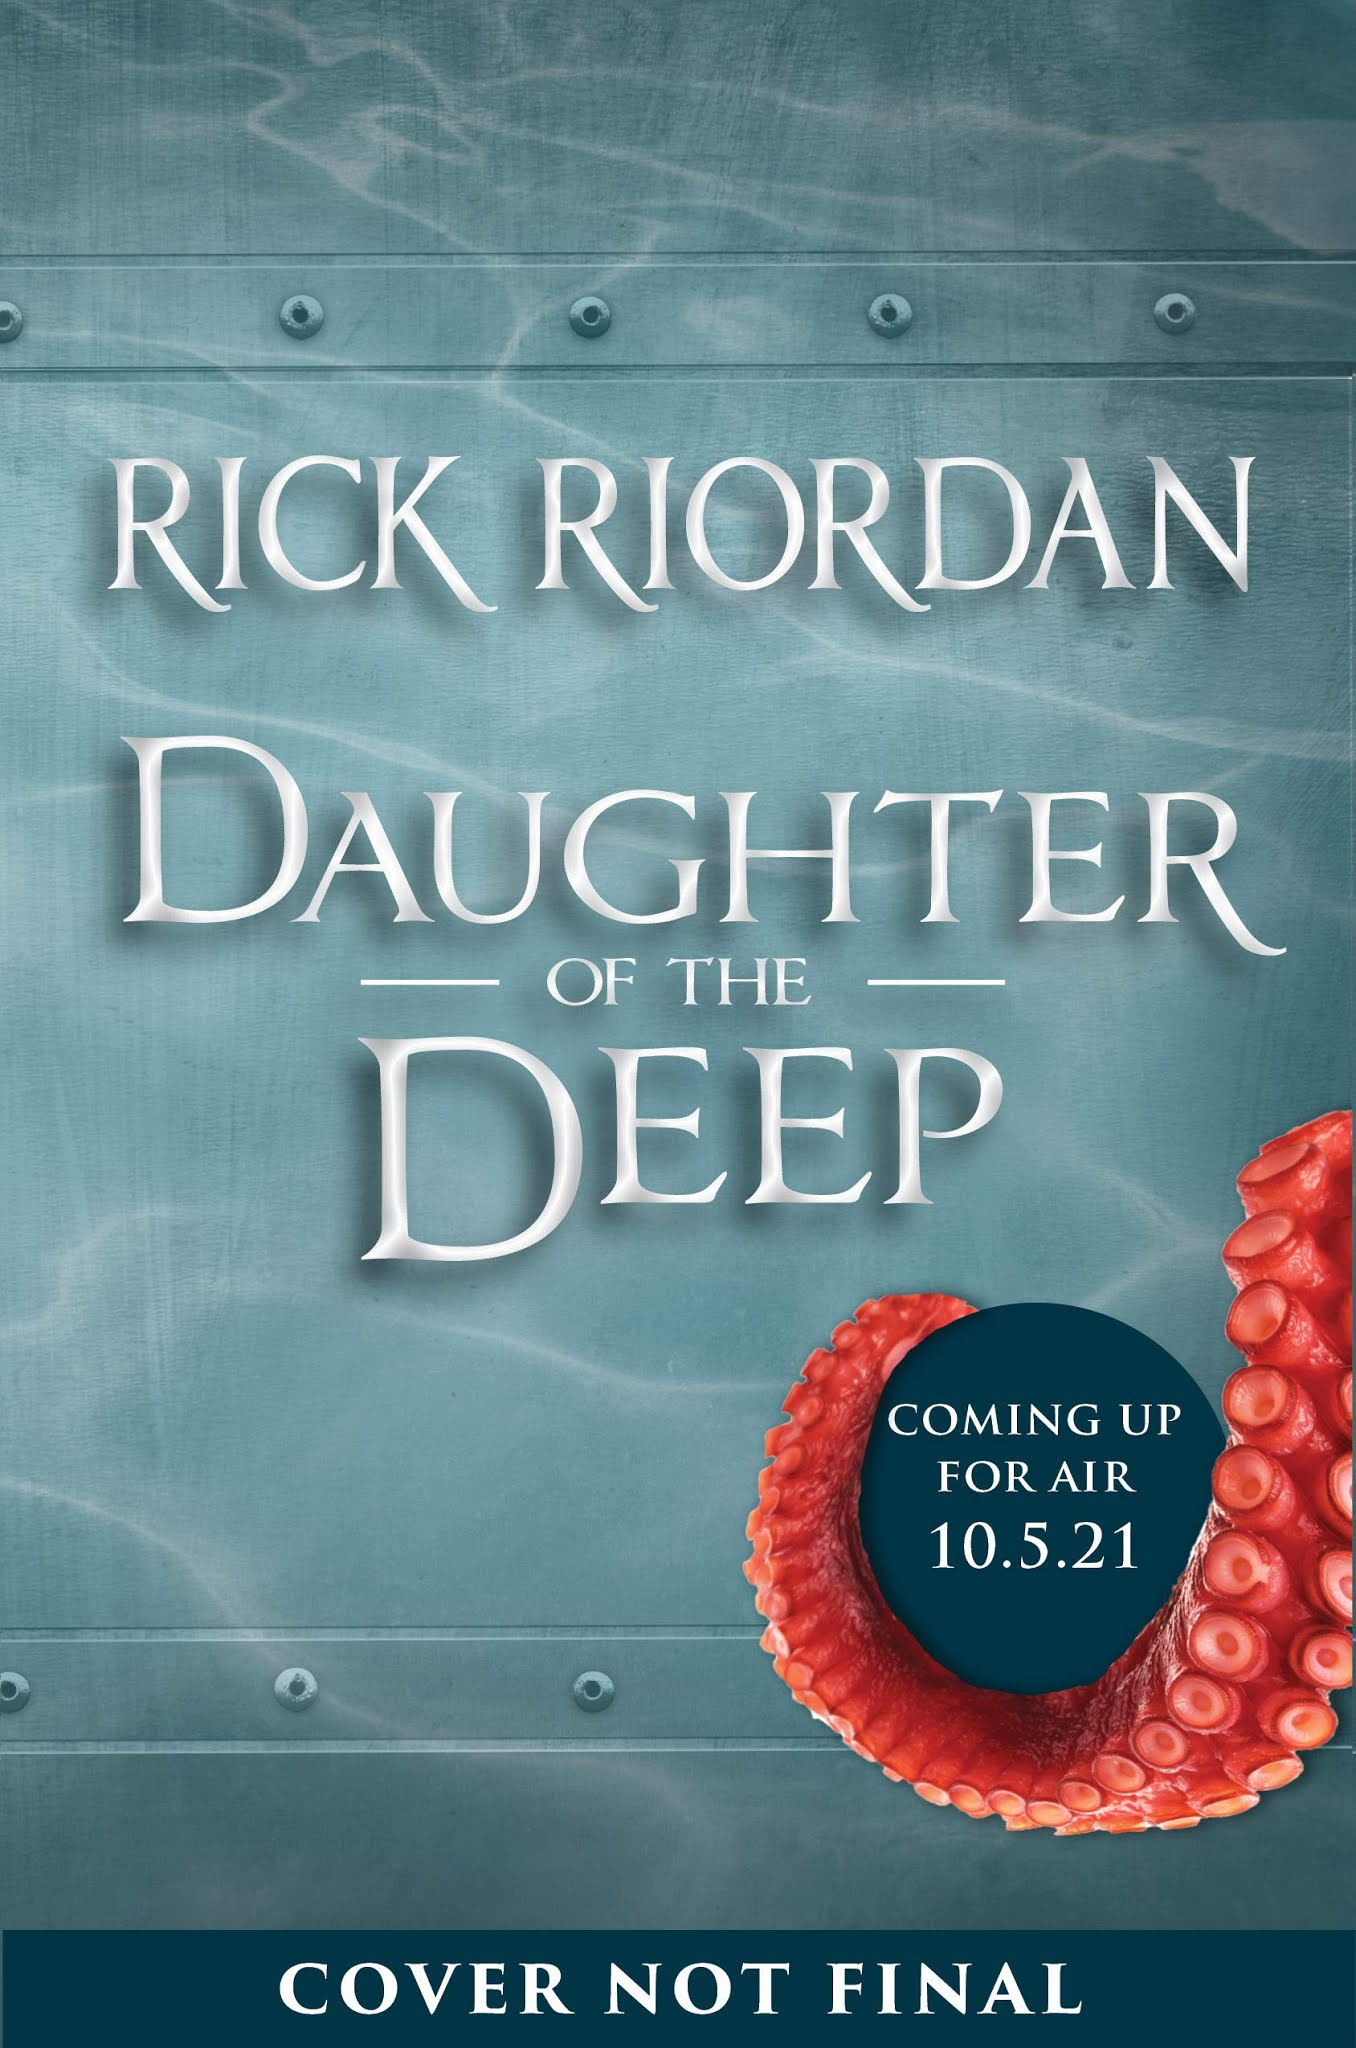 Daughter of the Deep by Rick Riordan